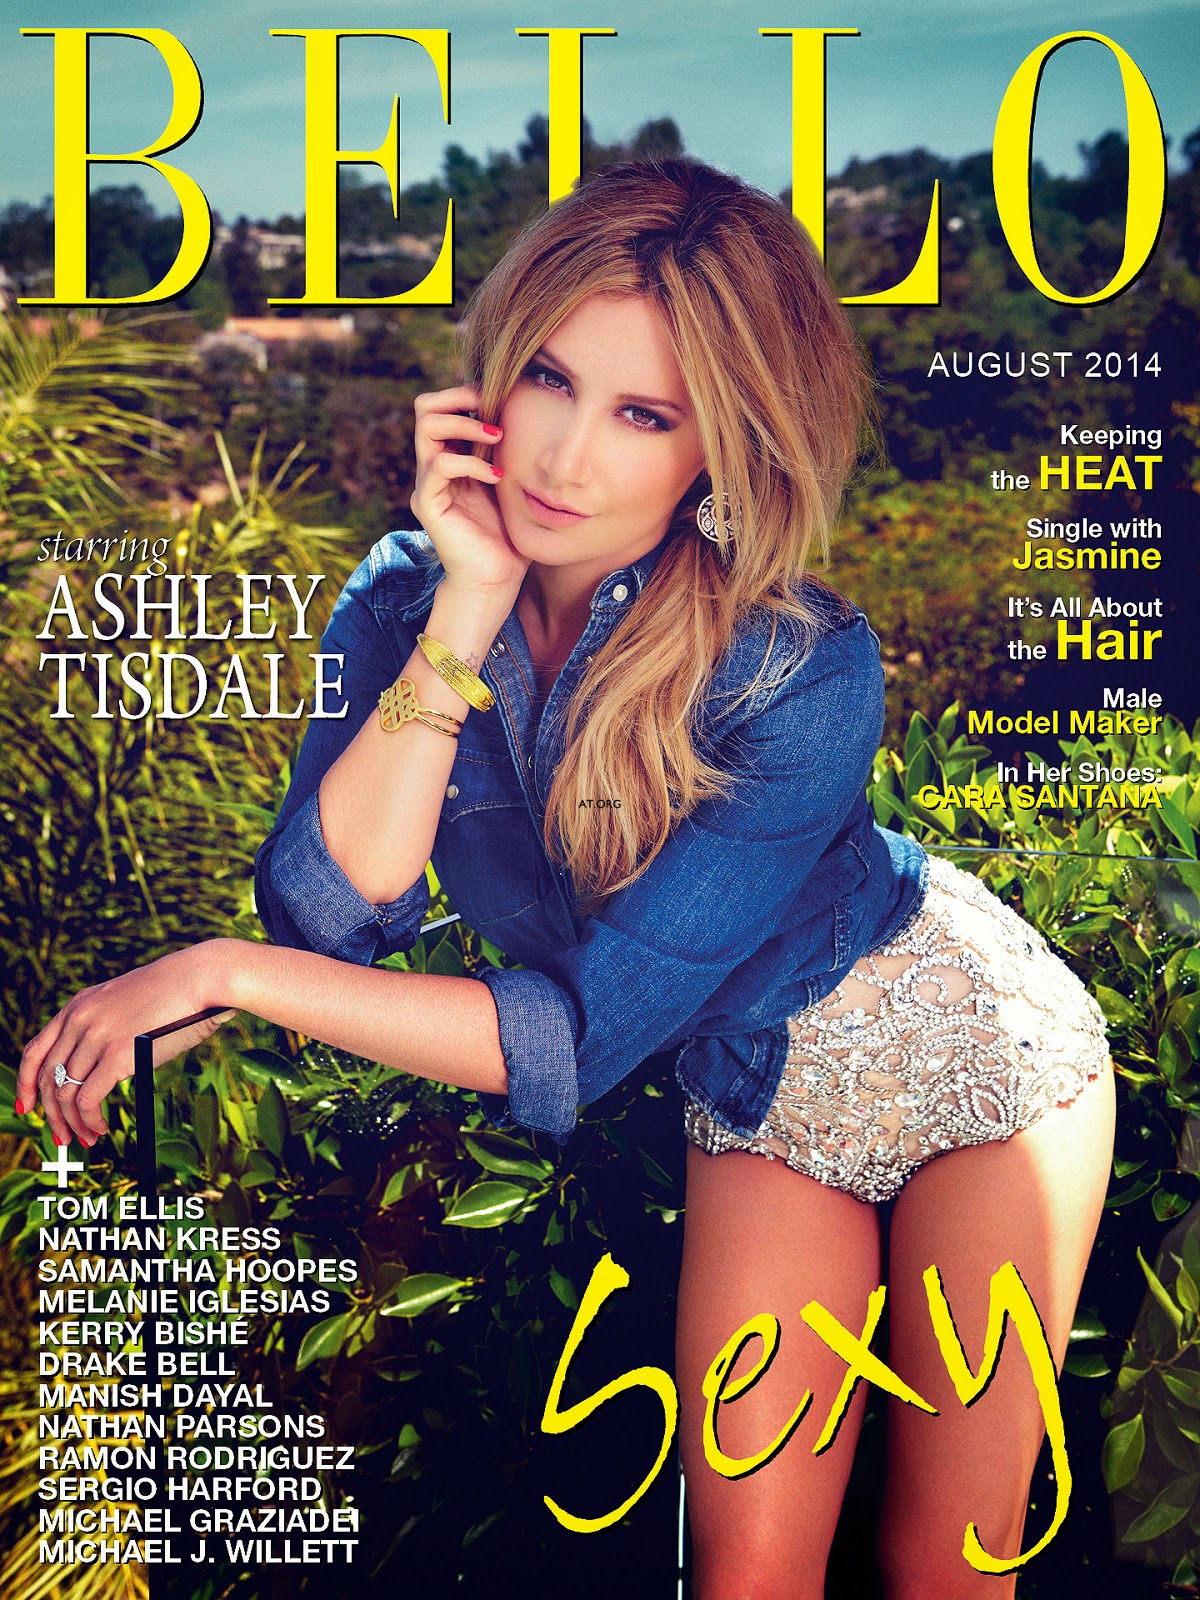 Ashley Tisdale by Aleksandar Tomovic for Bello Magazine, August 2014